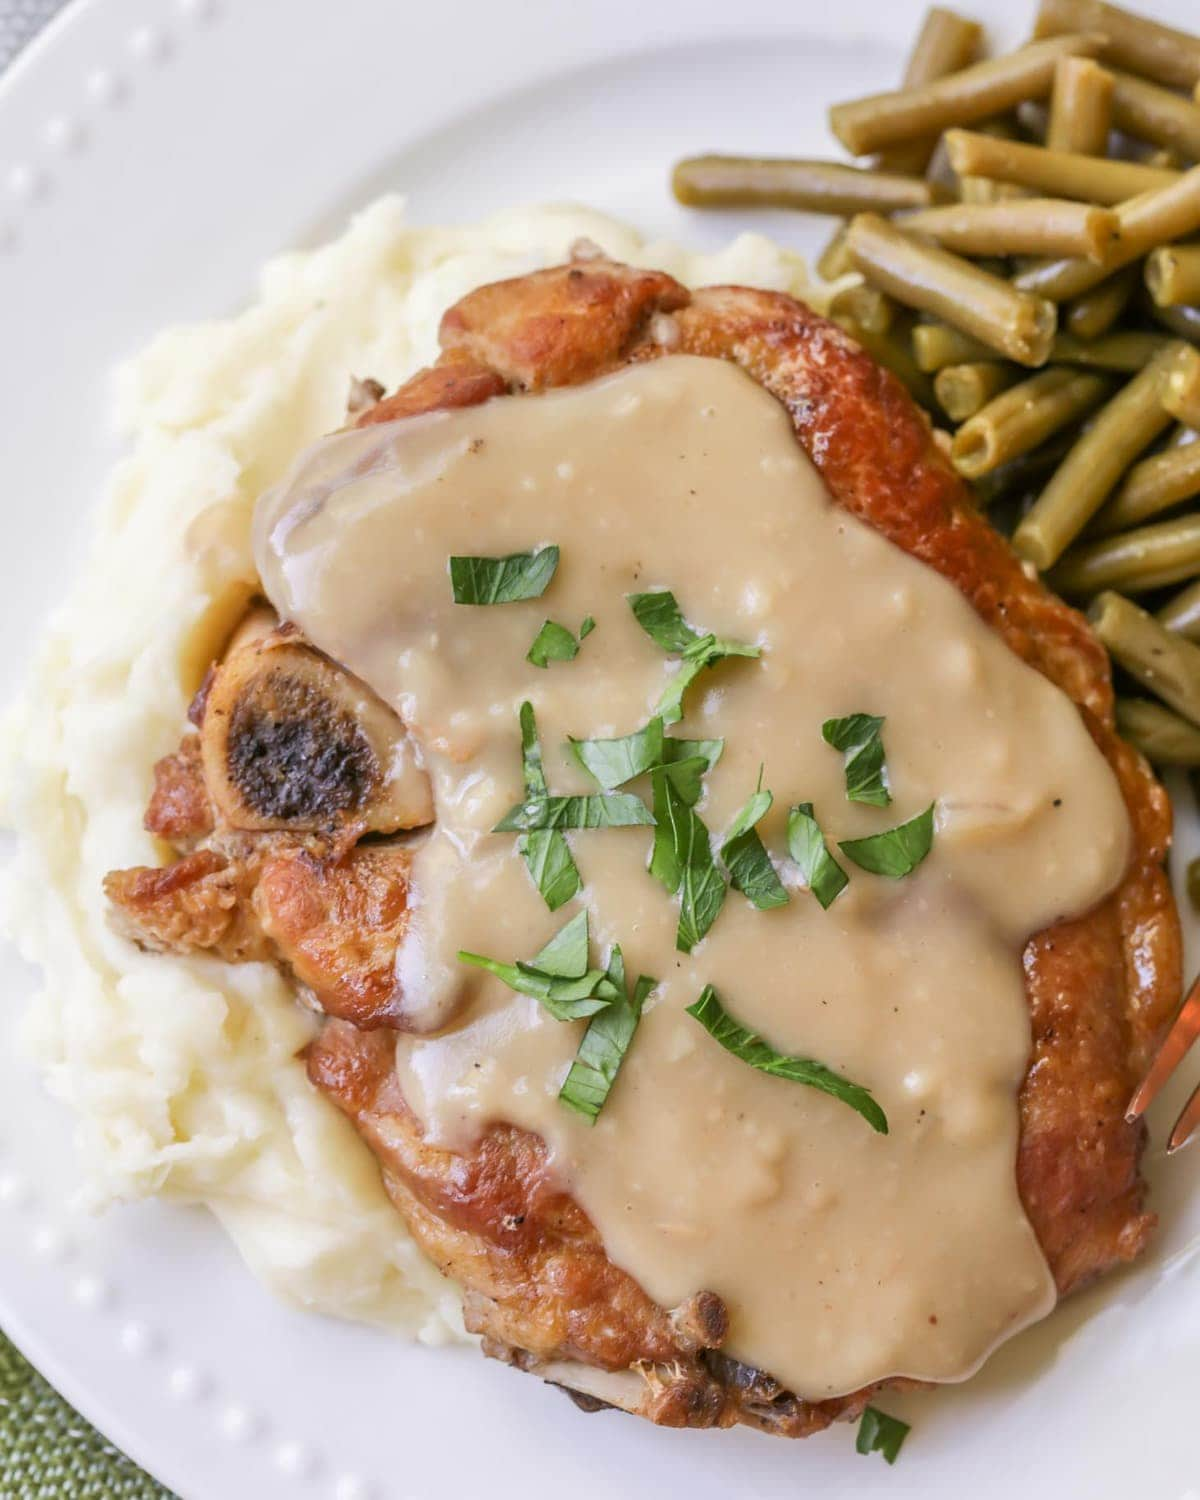 Crock Pot Pork Chops with gravy and parsley